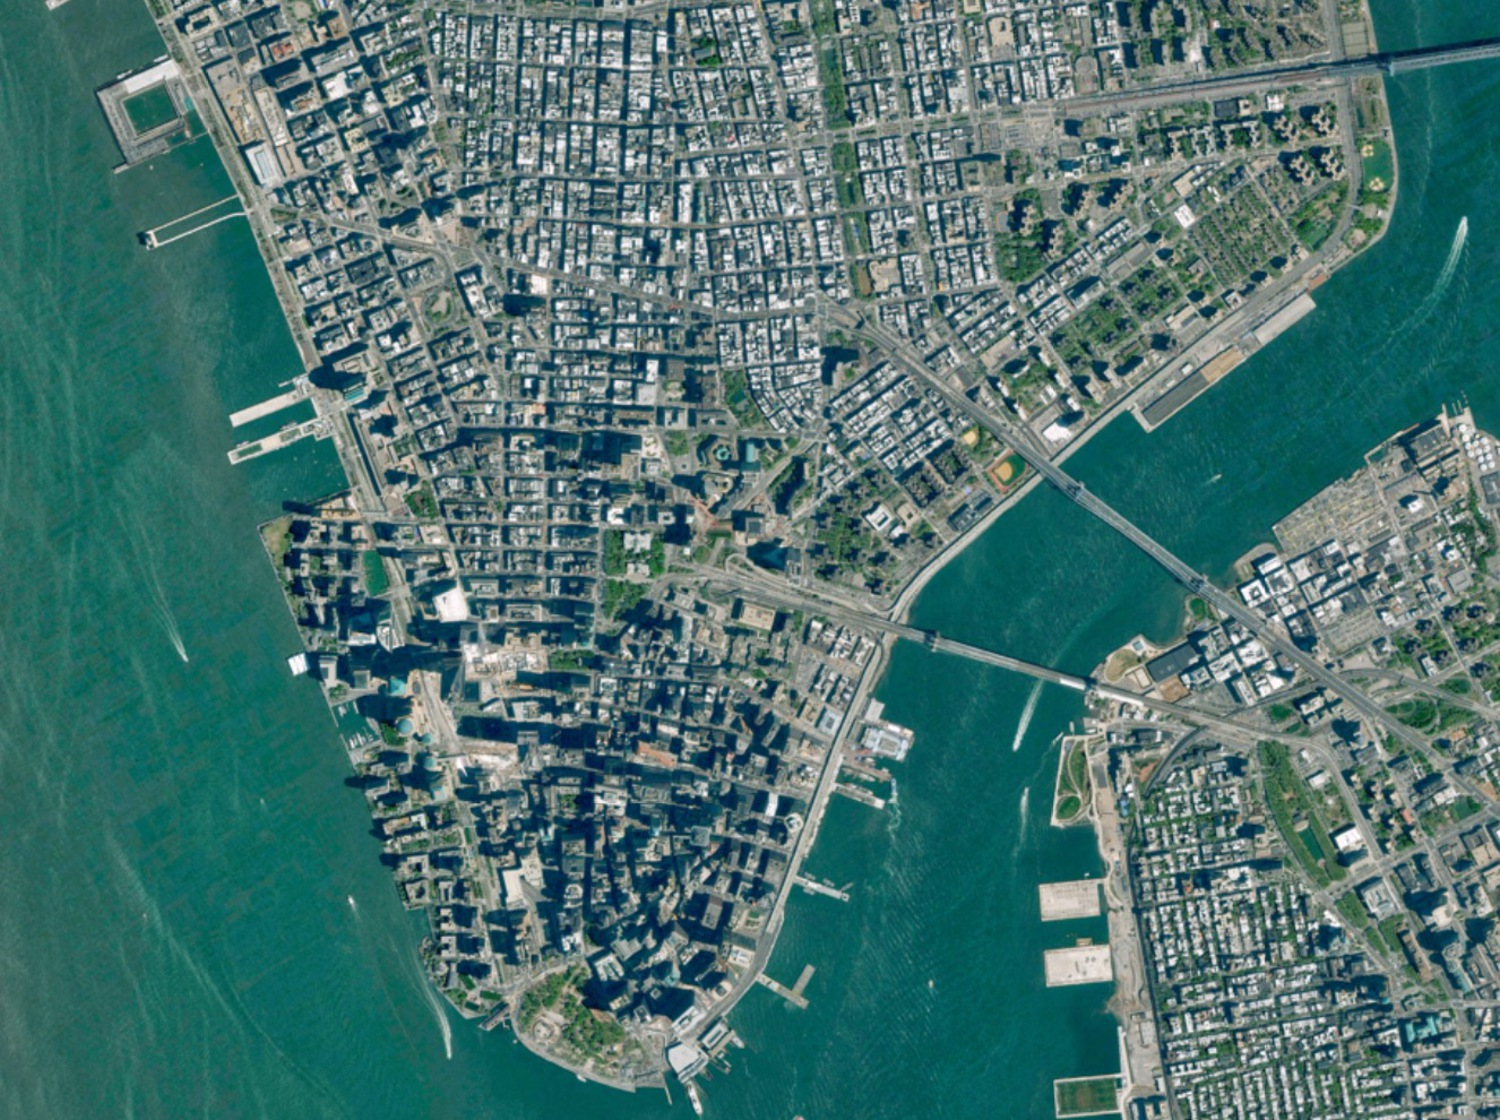 Even from Space, Lower Manhattan Throws Some Major Shade